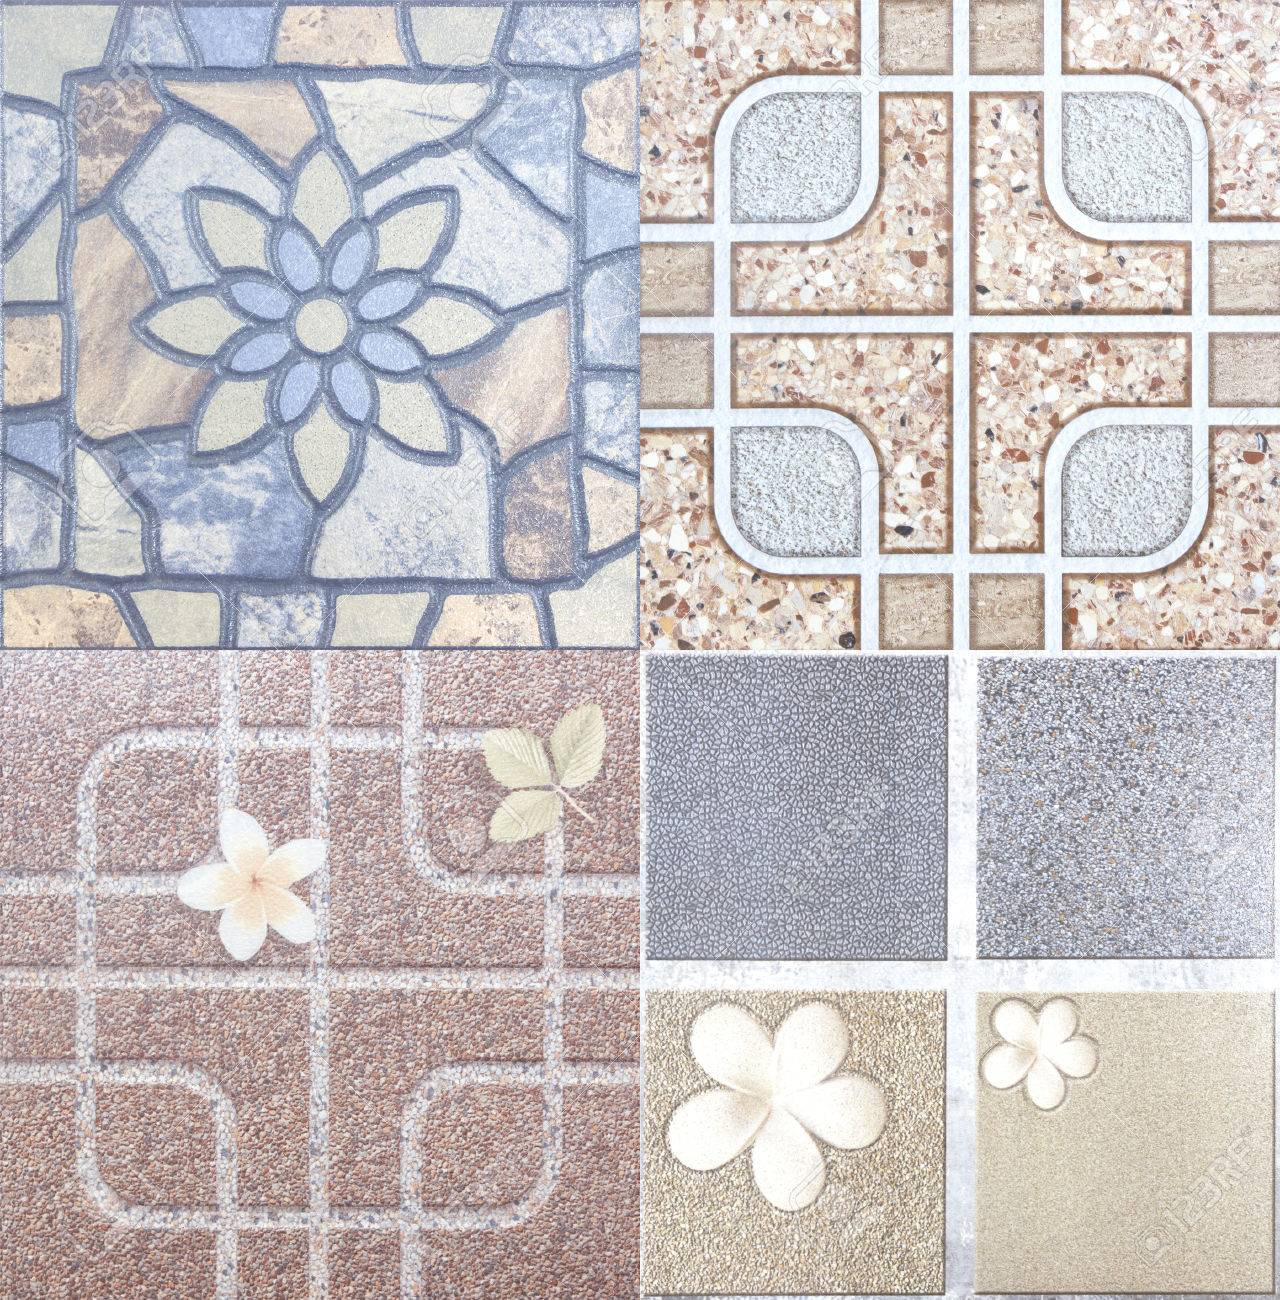 Ceramic tile manufacturing process gallery tile flooring design ceramic tile manufacturing image collections tile flooring floor tiles companies in india gallery tile flooring design dailygadgetfo Images